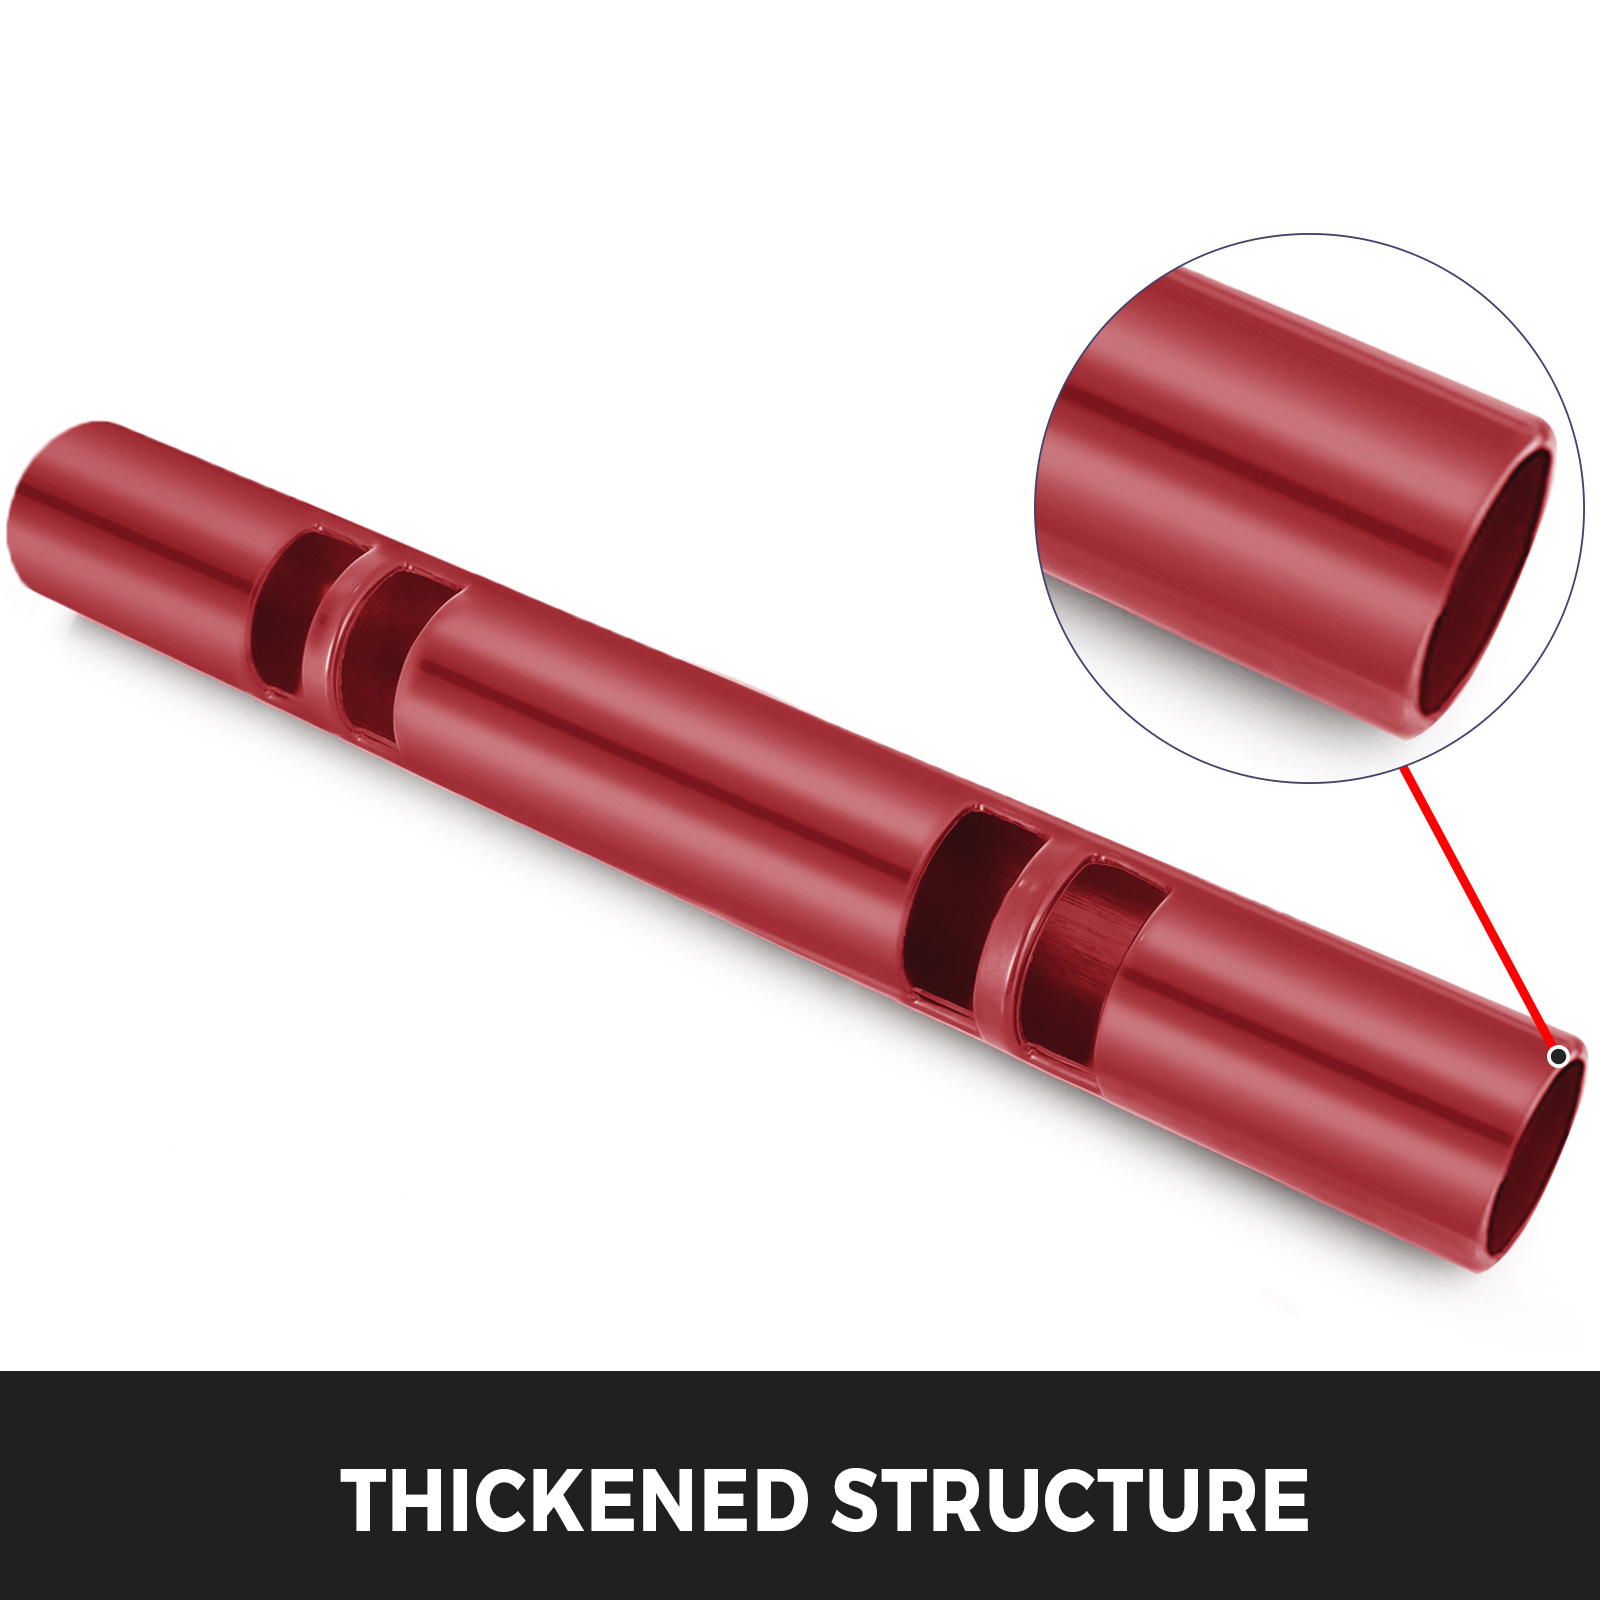 Vipr-Fitpro-Fitness-Tube-Loaded-Movement-Training-weightlifting-4-6-8-10-12-Kg thumbnail 87